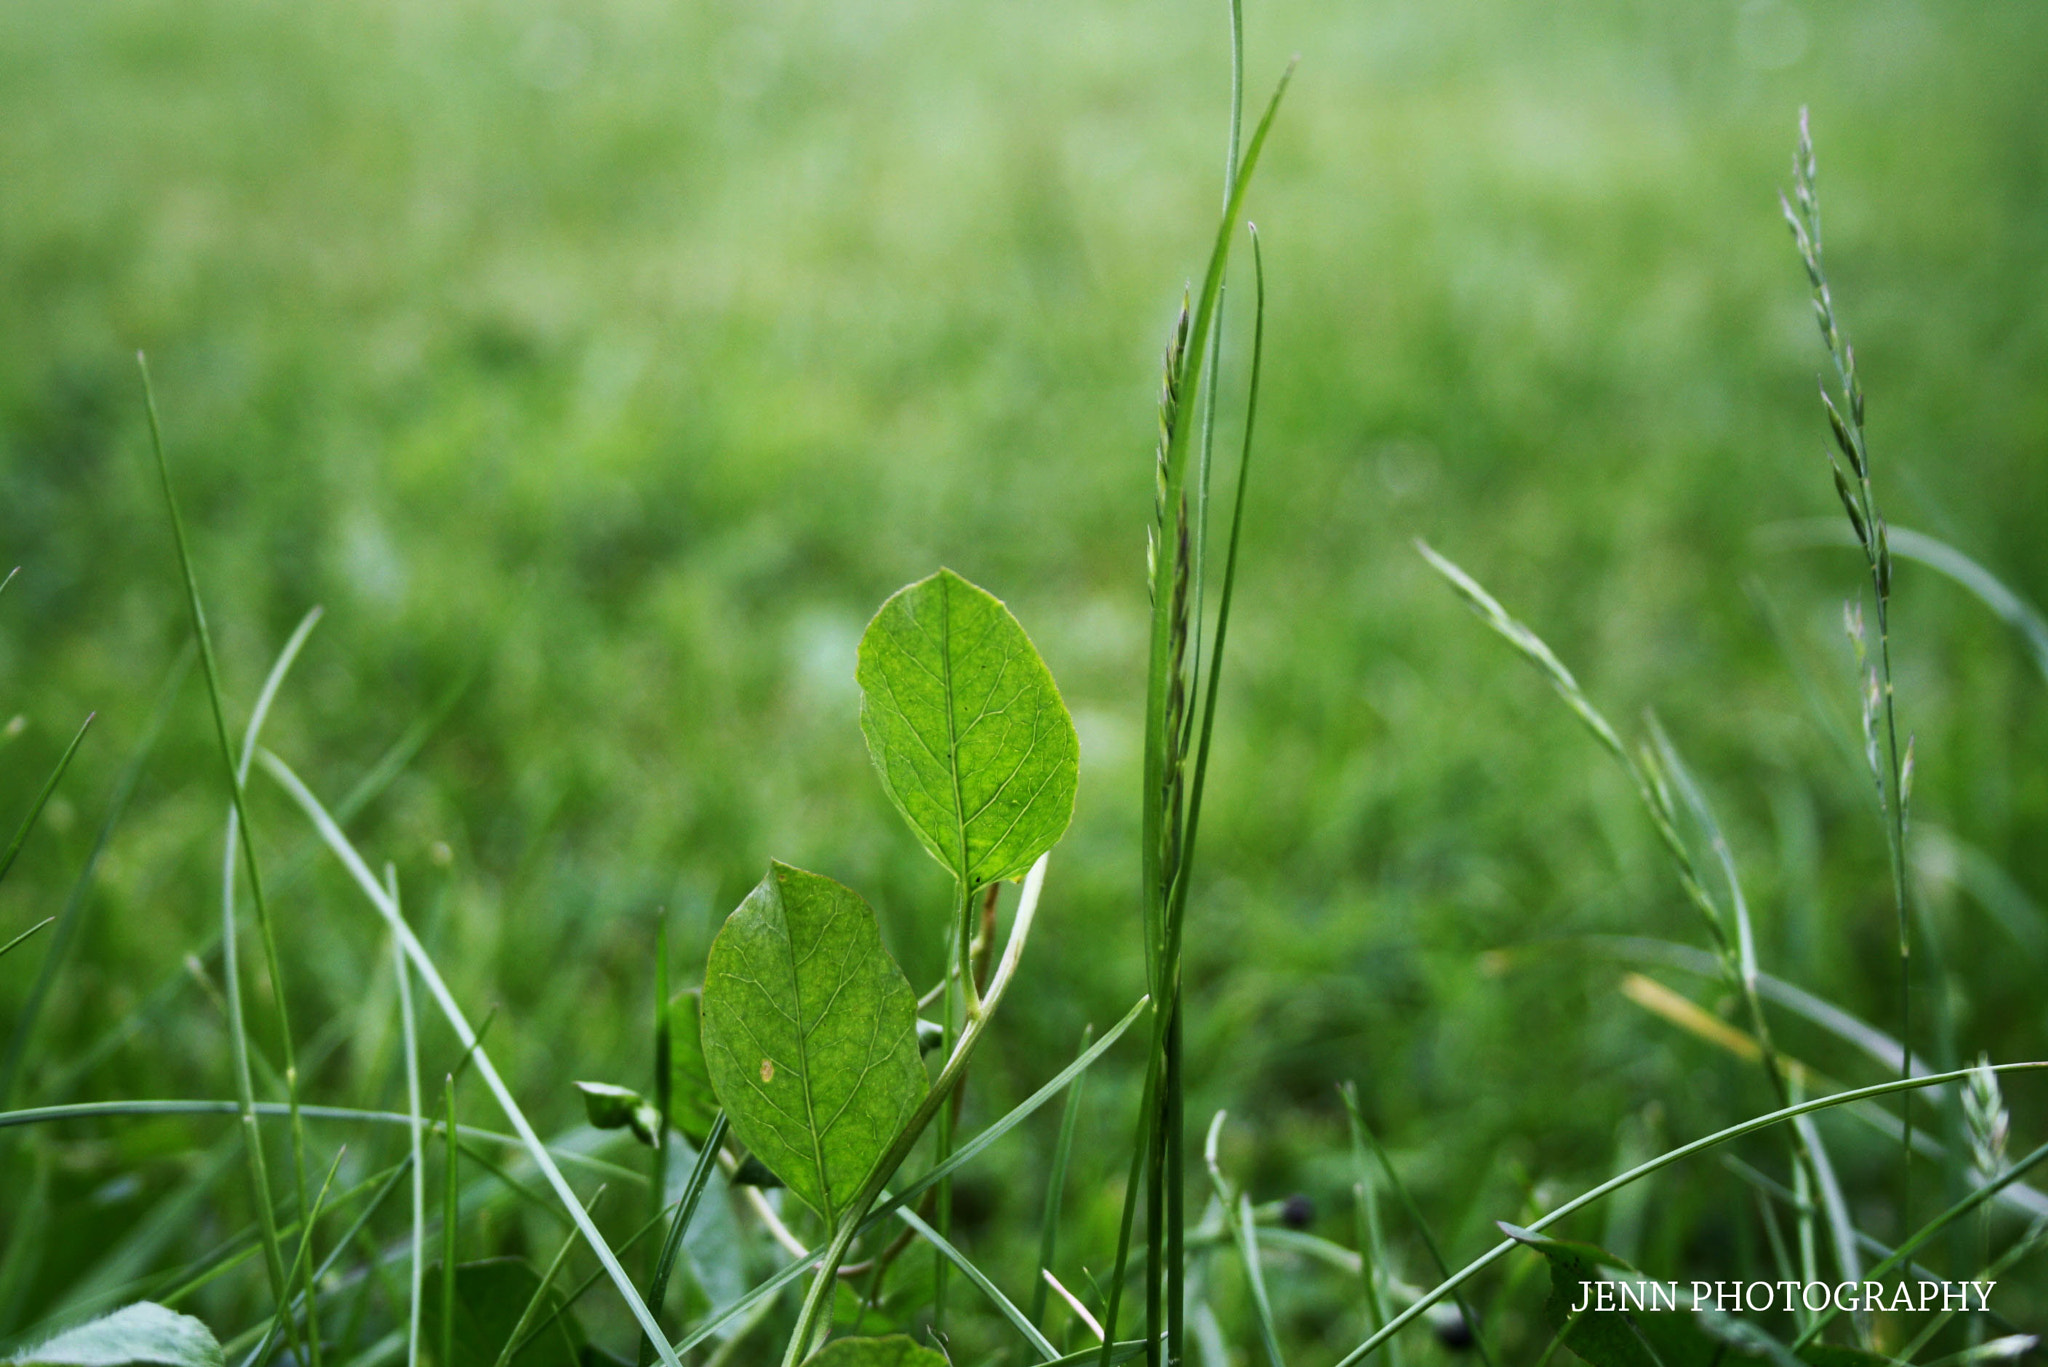 Photograph GRASS WITHOUT SUNLIGHT by Jennifer Timmermans on 500px